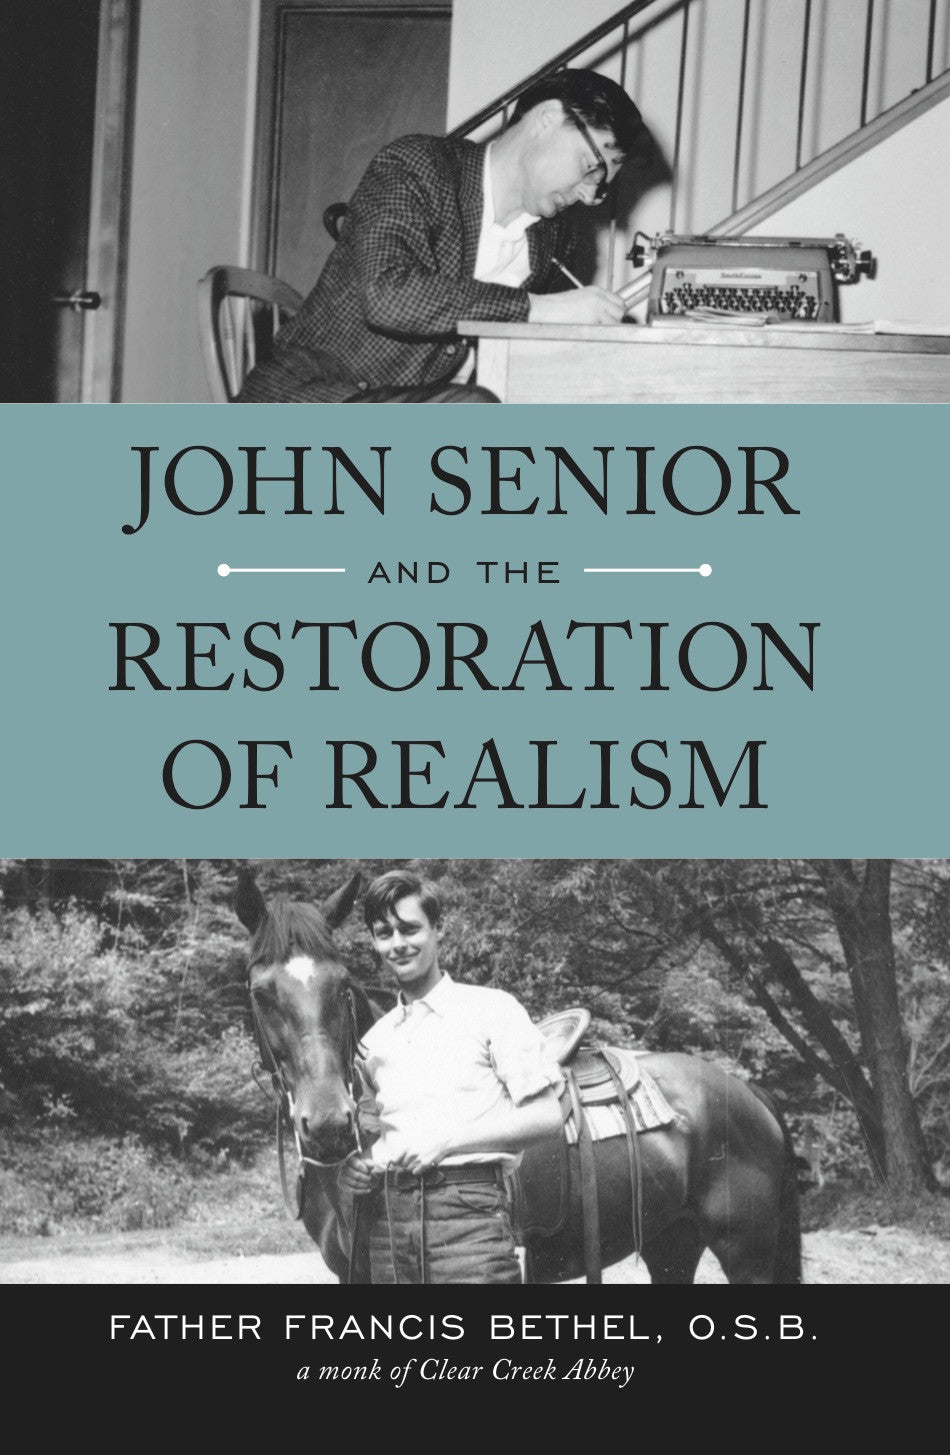 John Senior and the Restoration of Realism